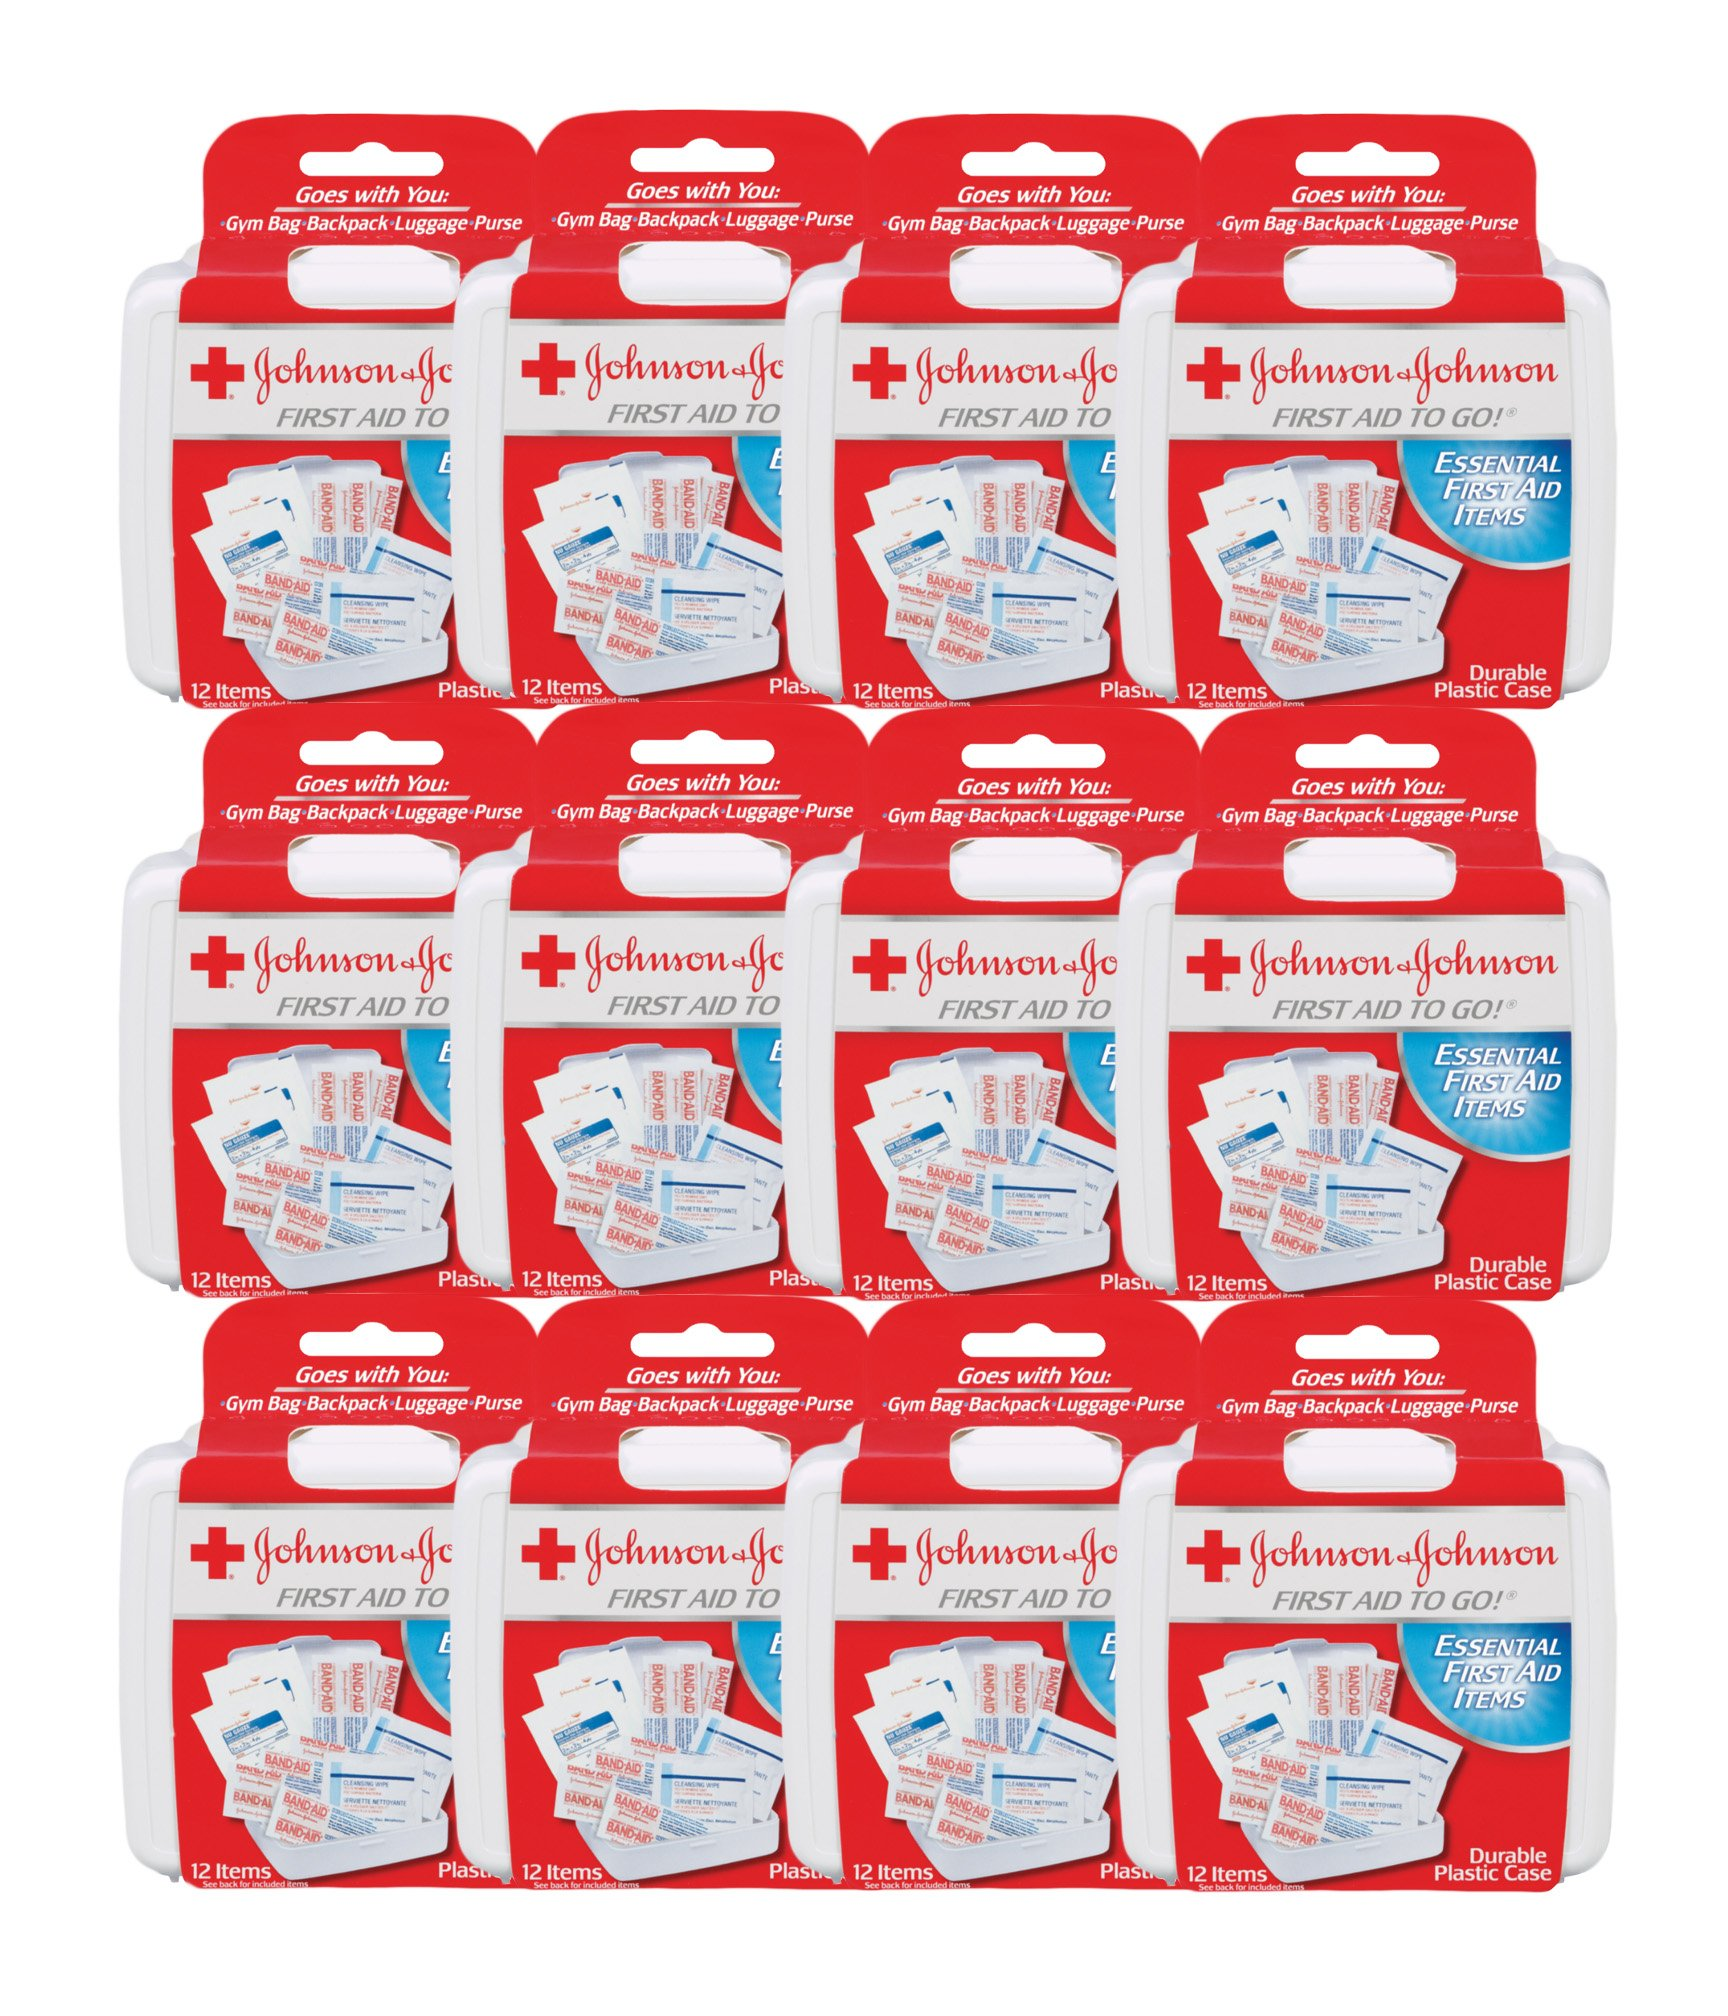 First Aid to Go! – by Johnson & Johnson – Essential Items in a Mini First Aid Travel Kit for People on the Go – 12 Packs of 12 Count Kits